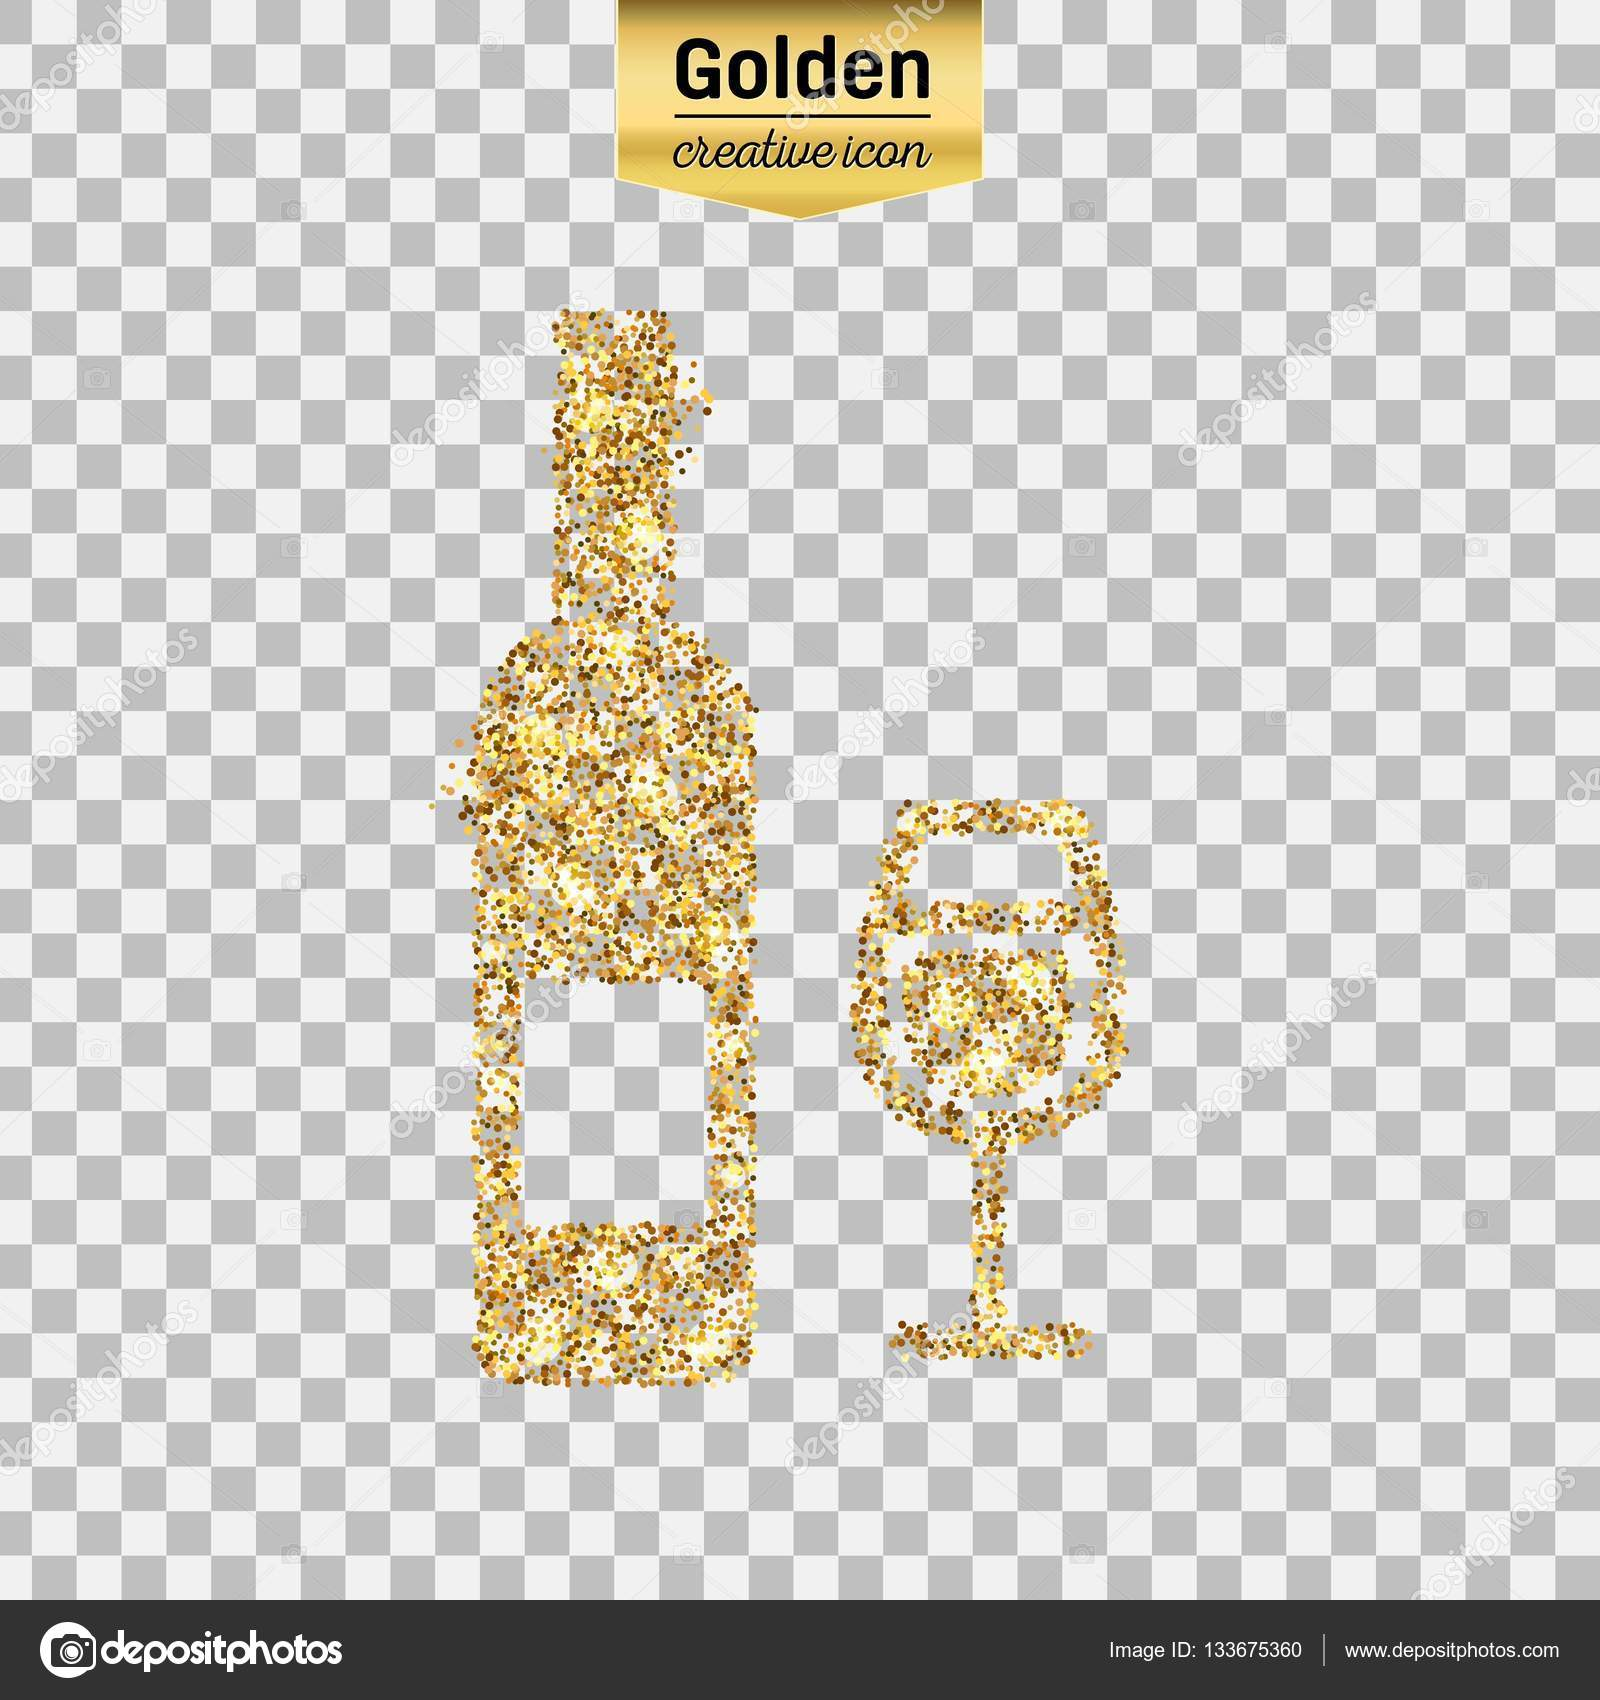 2d23ad897df Gold glitter vector icon of wine bottle isolated on background. Art  creative concept illustration for web